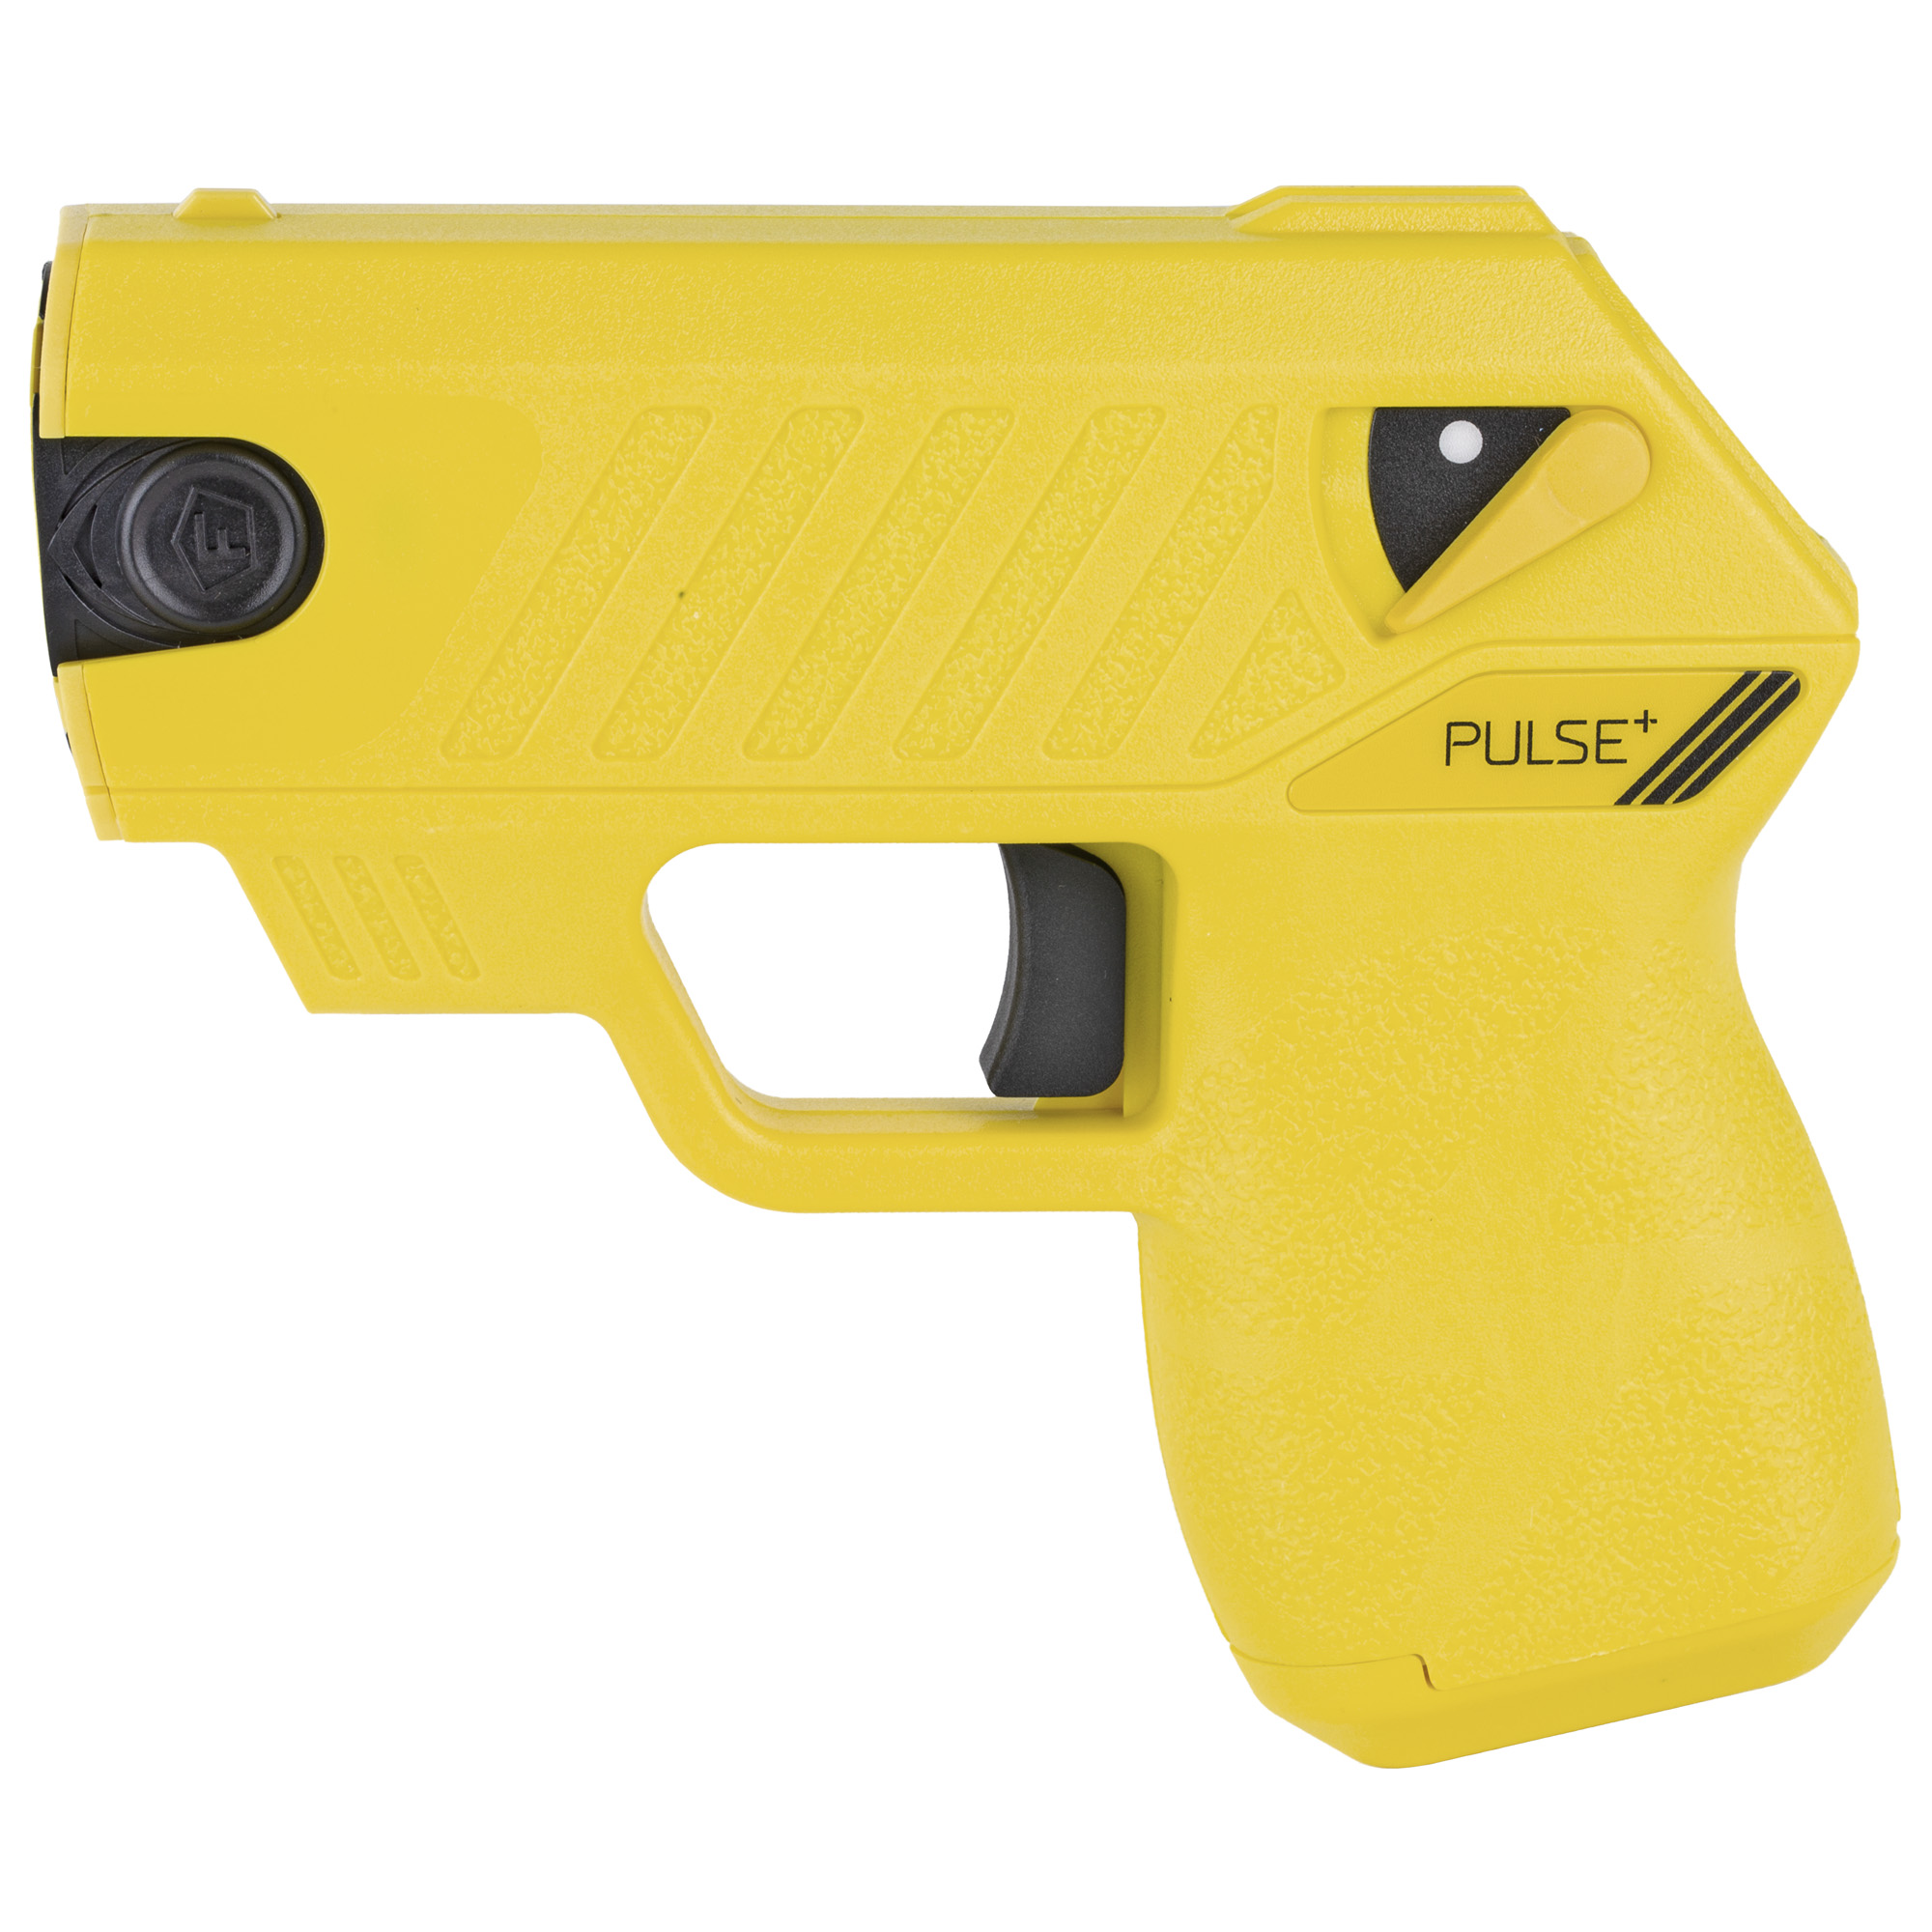 """The TASER Pulse+ brings safety in today's connected world. Using the same less-lethal technology as law enforcement"""" the Pulse+ integrates with your mobile phone via the Noonlight mobile app to contact emergency dispatch when fired. No fumbling for the phone or freezing up in fear. Pull the trigger and help is on the way. Weighing in at just 8 ounces"""" this high-tech"""" intuitively-designed device is revolutionizing the self-defense market. You're fast-paced and connected. Your self-defense tool should be too."""